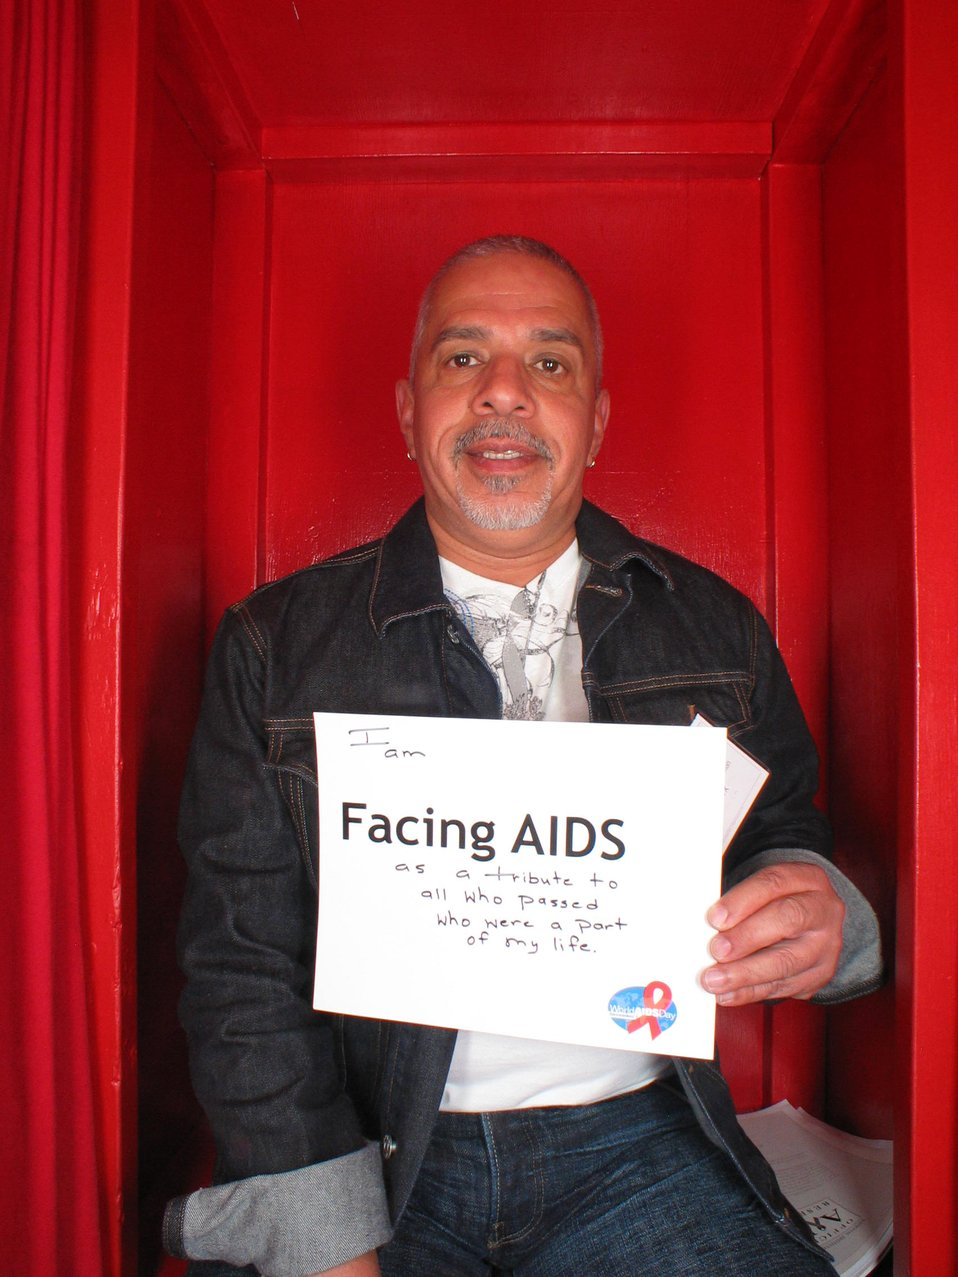 I am Facing AIDS as a tribute to all who passed who were a part of my life.